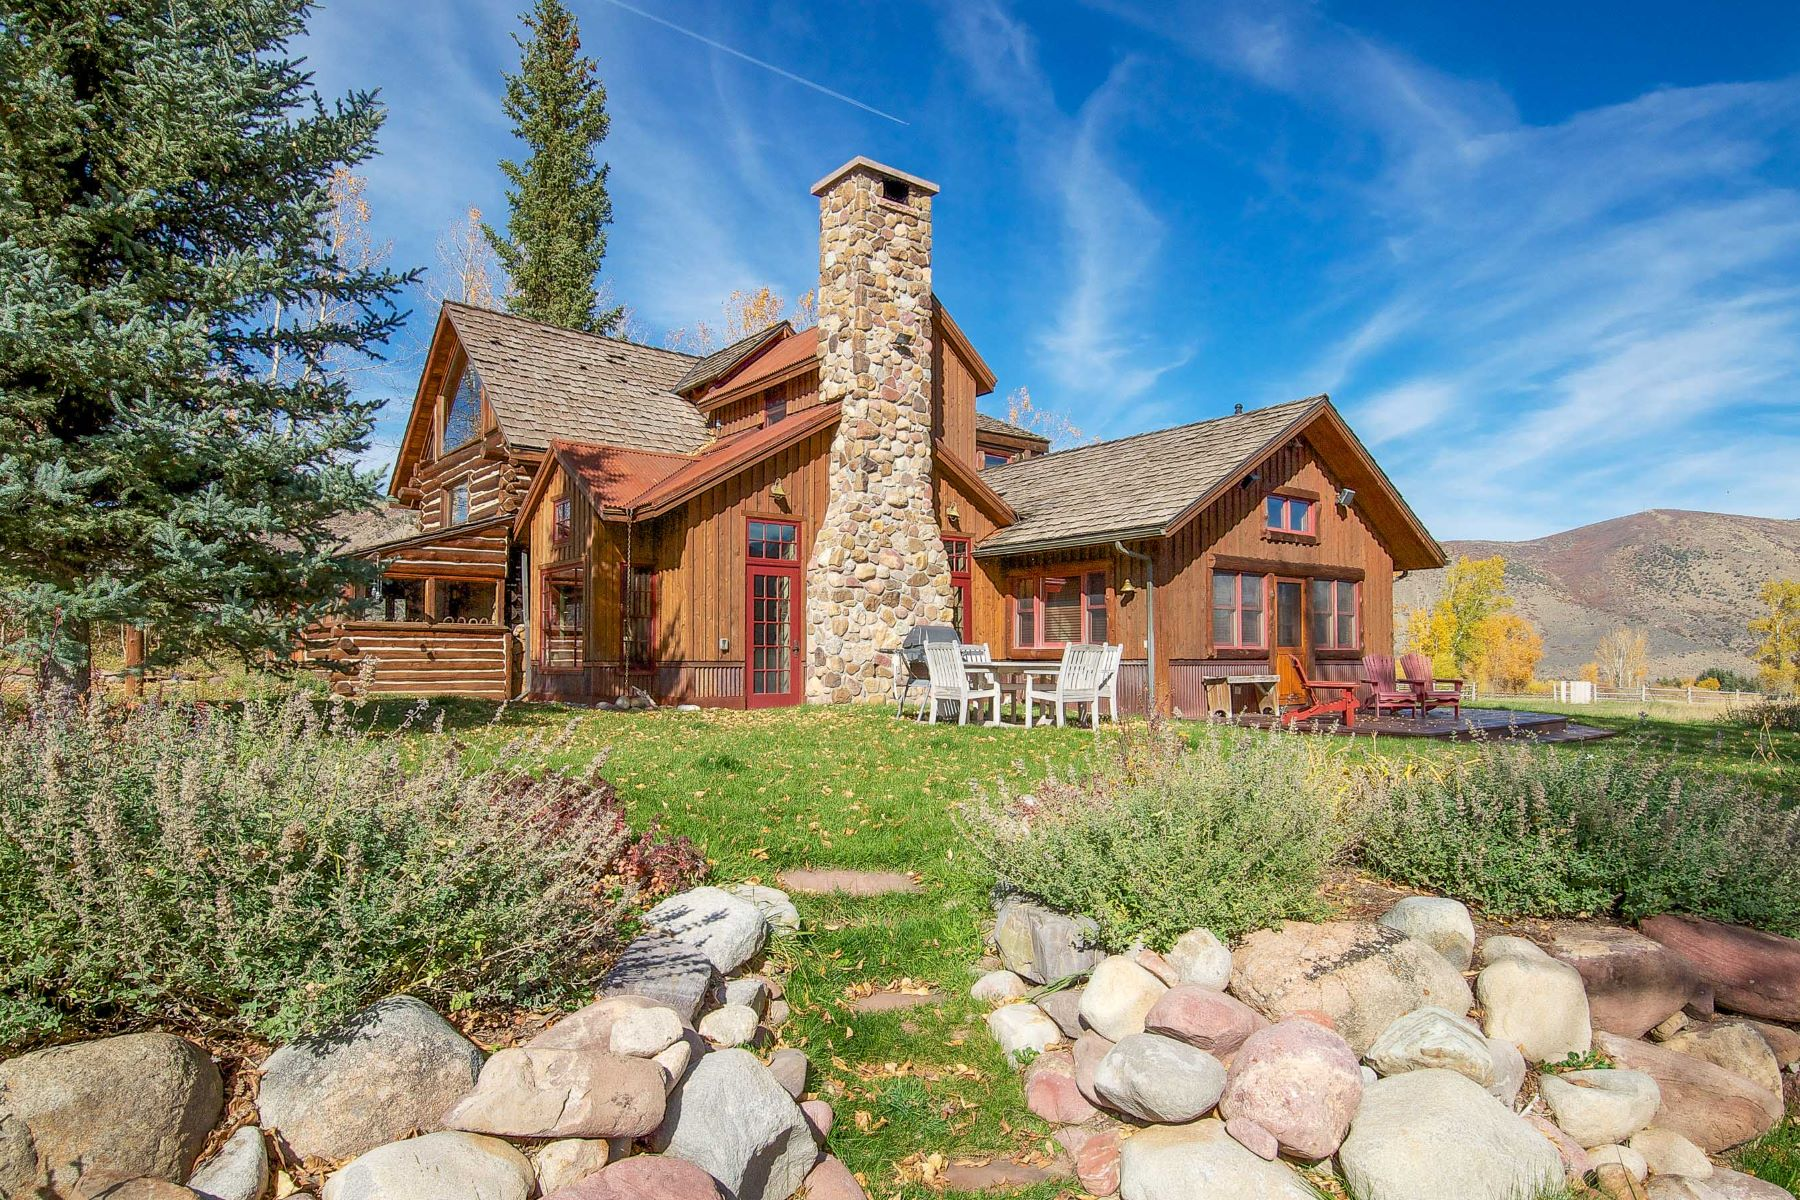 Single Family Home for Active at Rocky Mountain Ranch on the River 1150 Capitol Creek Road Snowmass, Colorado 81654 United States